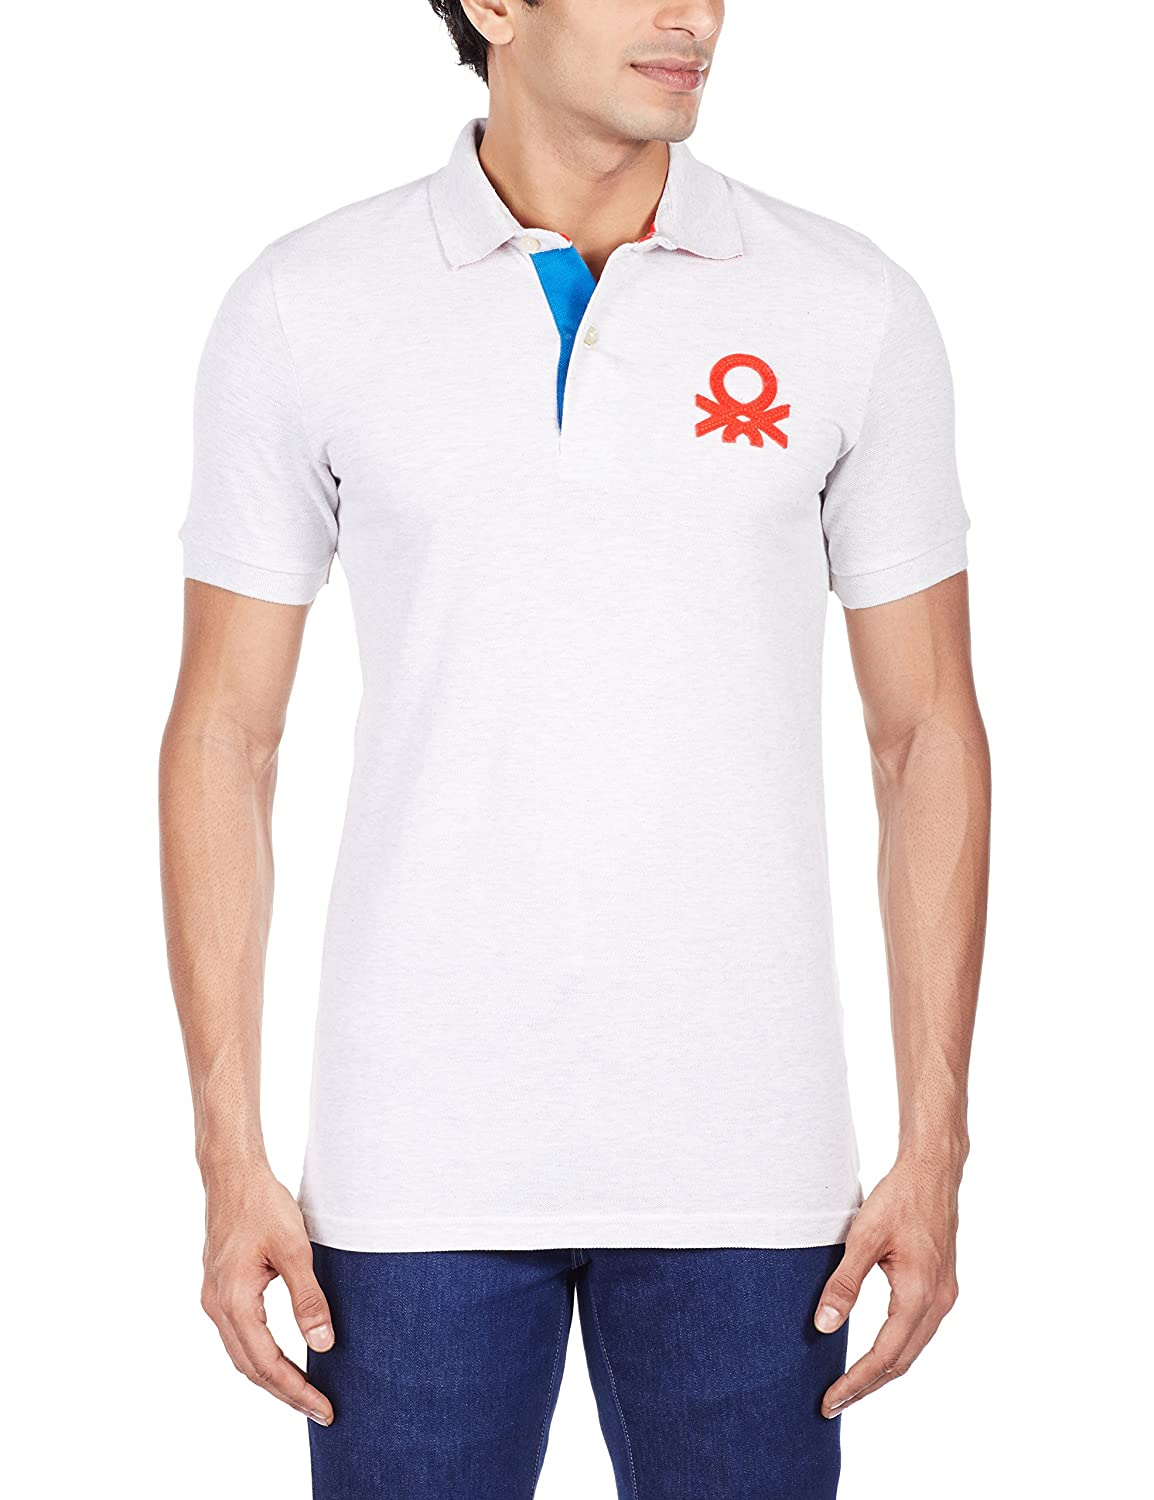 United colors of benetton mens polo united colors of benetton mens polo 890323990075715p3089j1240ixx largegrey melange amazon clothing accessories geenschuldenfo Image collections